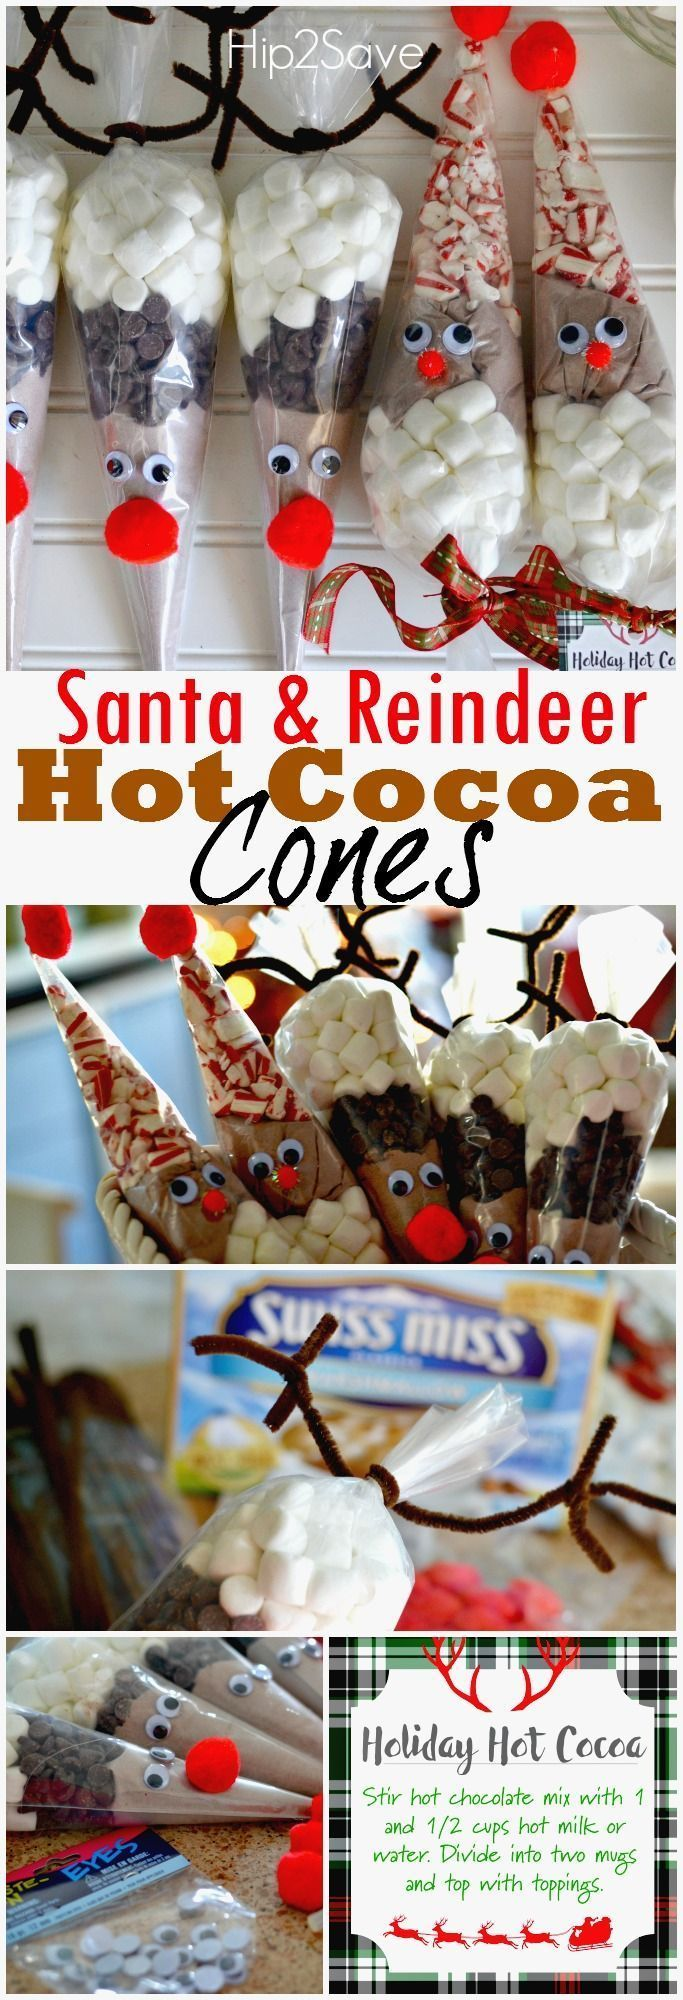 Santa & Reindeer Hot Cocoa Cones. This easy to make DIY Christmas gift is perfect if you're looking to give something handmade and cute. Whether it's for your boyfriend, or for your mom, there's no doubt that will adore this cute Christmas present. Comes with a great printable that will add that extra Christmas charm.